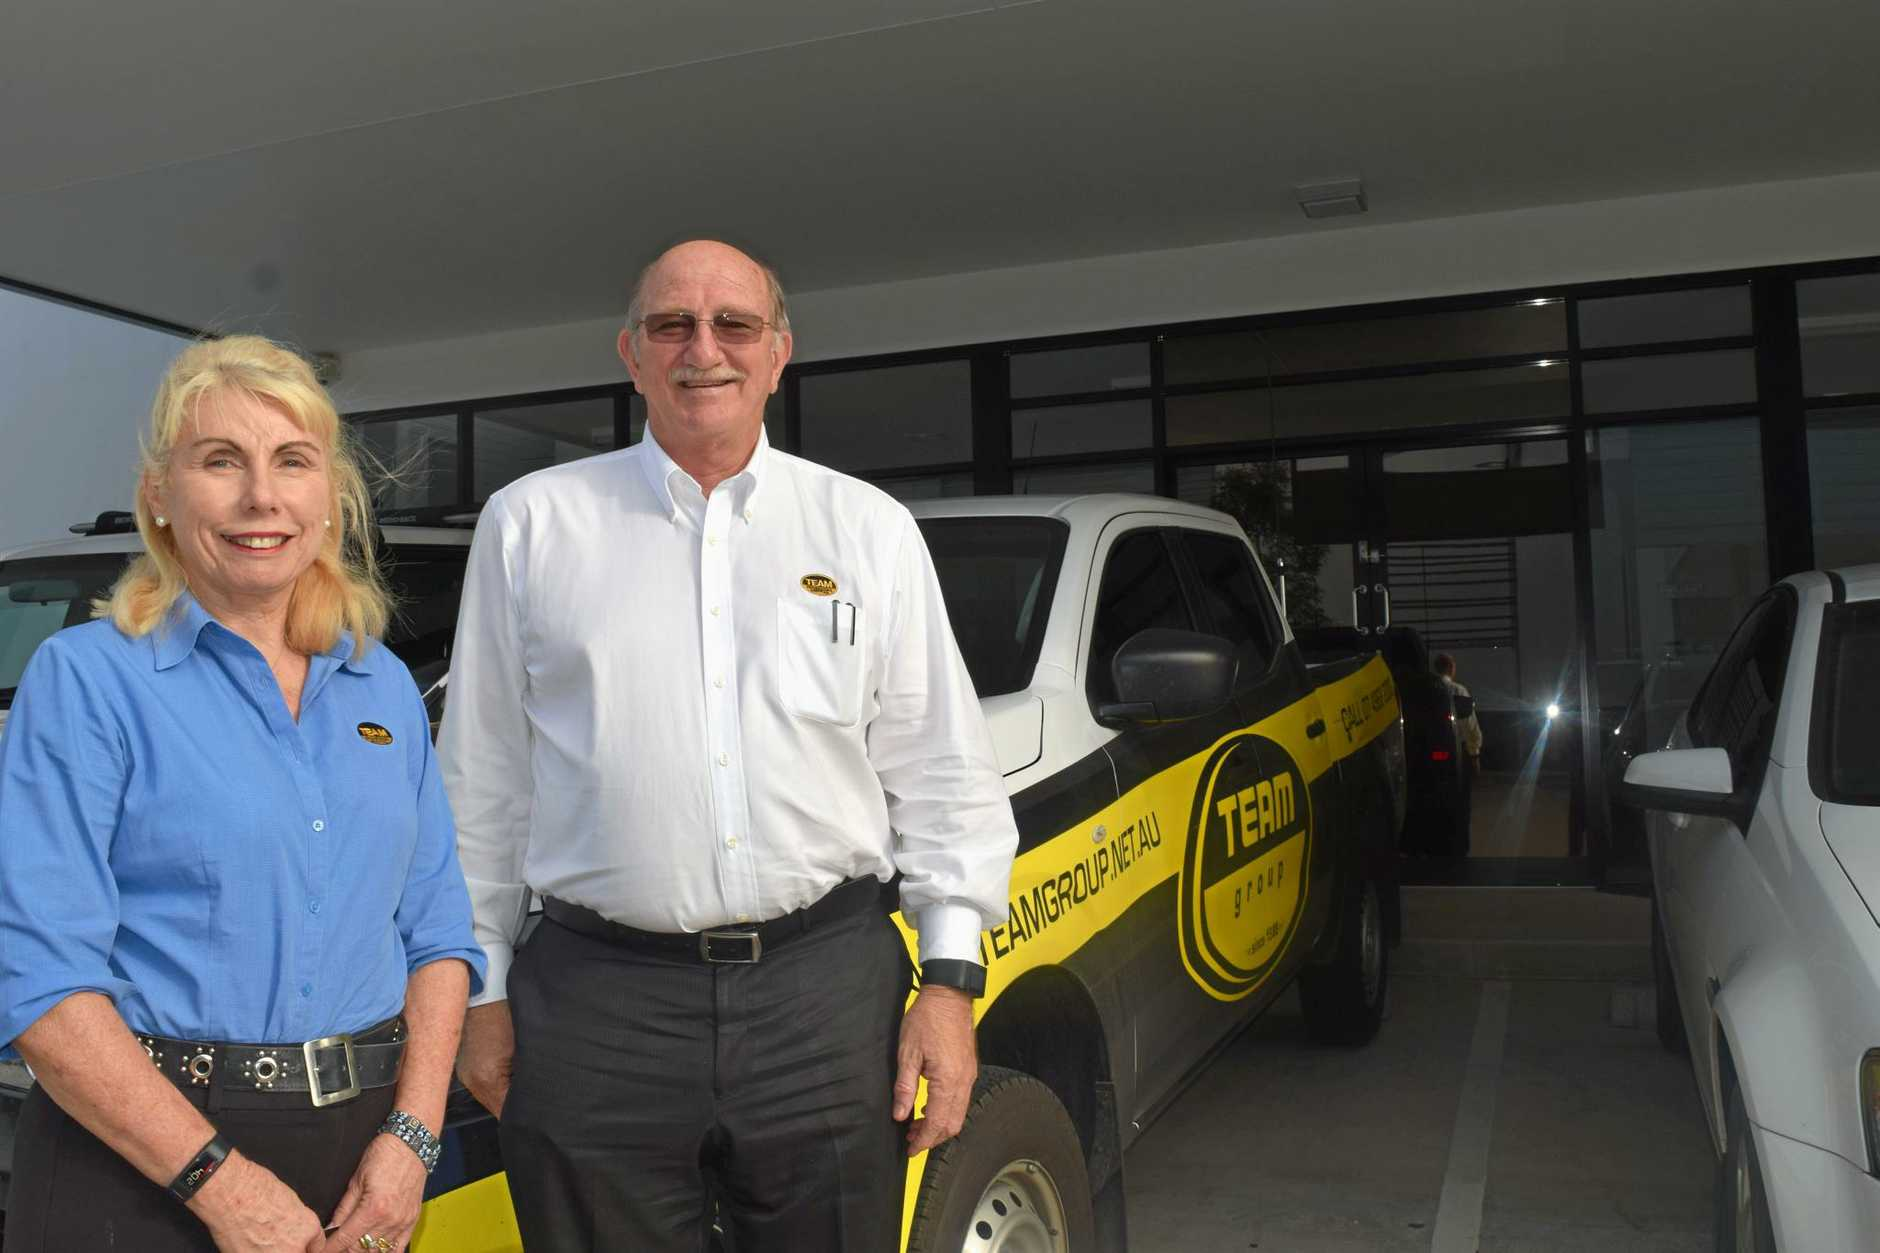 BUILDING A FUTURE: Jim and Therese Hegerty, of engineering construction company Team Group, believe the mining and construction industry is improving in Mackay.